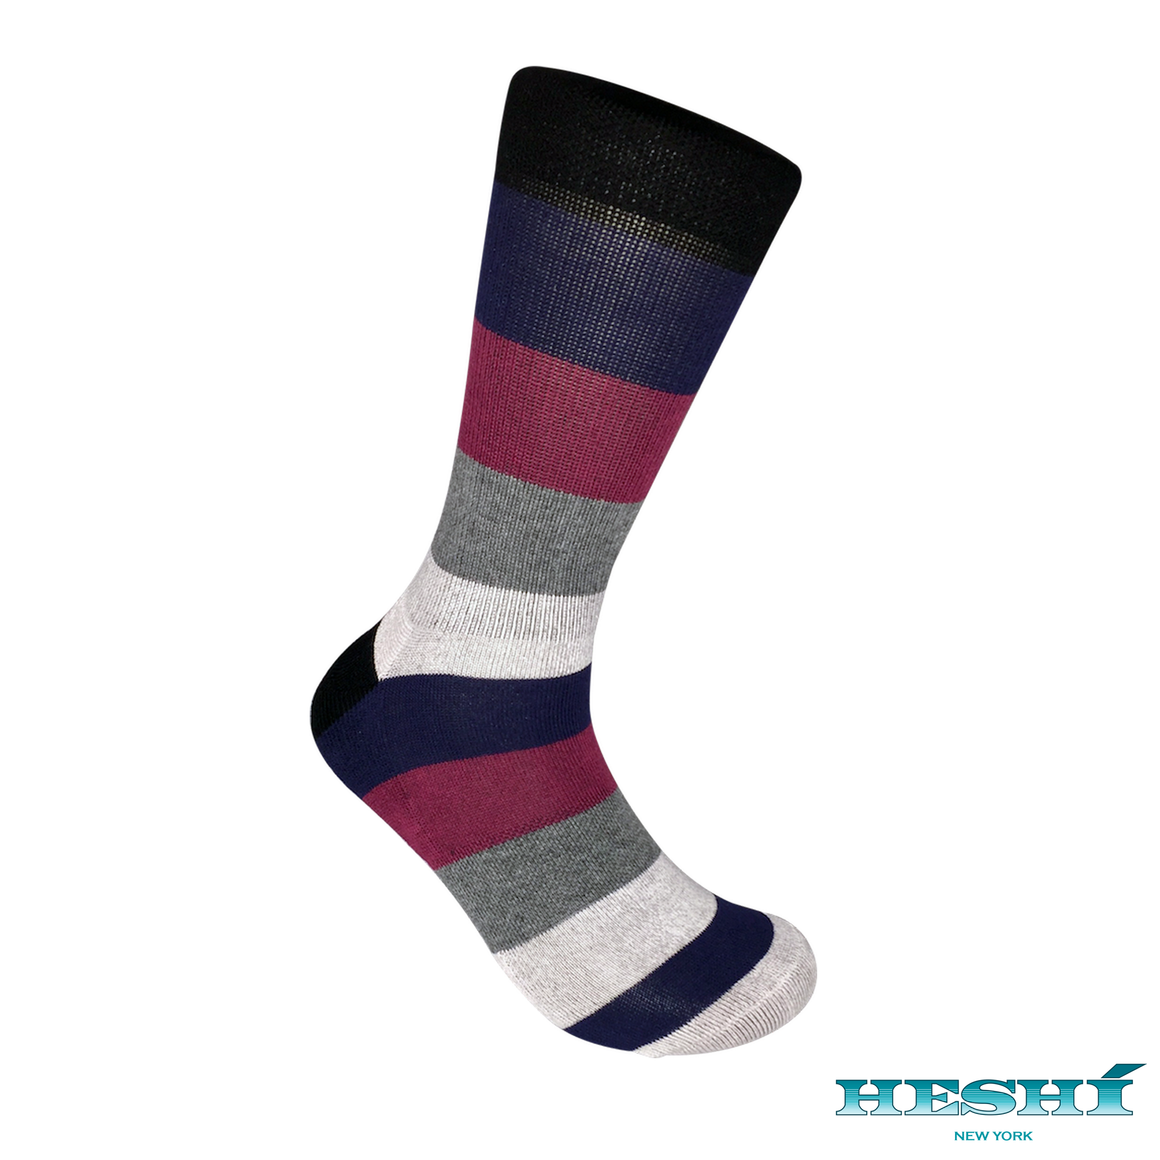 Heshí Rugby Five Sock - Red/Blue